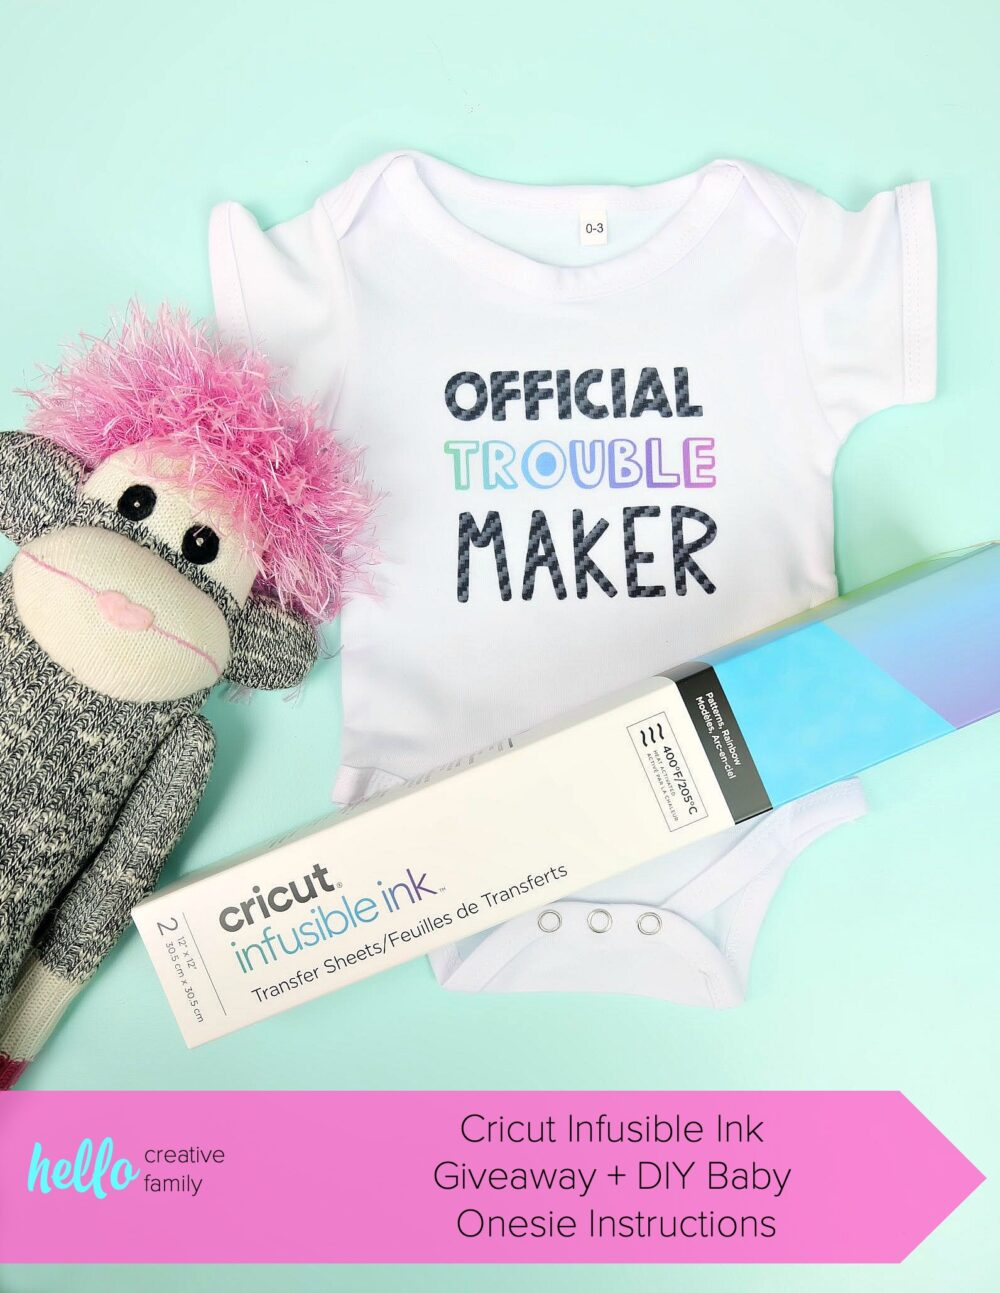 Win a Cricut Infusible Ink Giveaway plus a $100 Michaels Gift Card. Contest Closes 6/30/2019 and is open to US and Canadian Residents. Learn how to use Cricut Infusible Ink to make this adorable DIY baby onesie! It's an easy craft idea that makes a super cute handmade baby gift! #Giveaway #Contest #Cricut #InfusibleInk